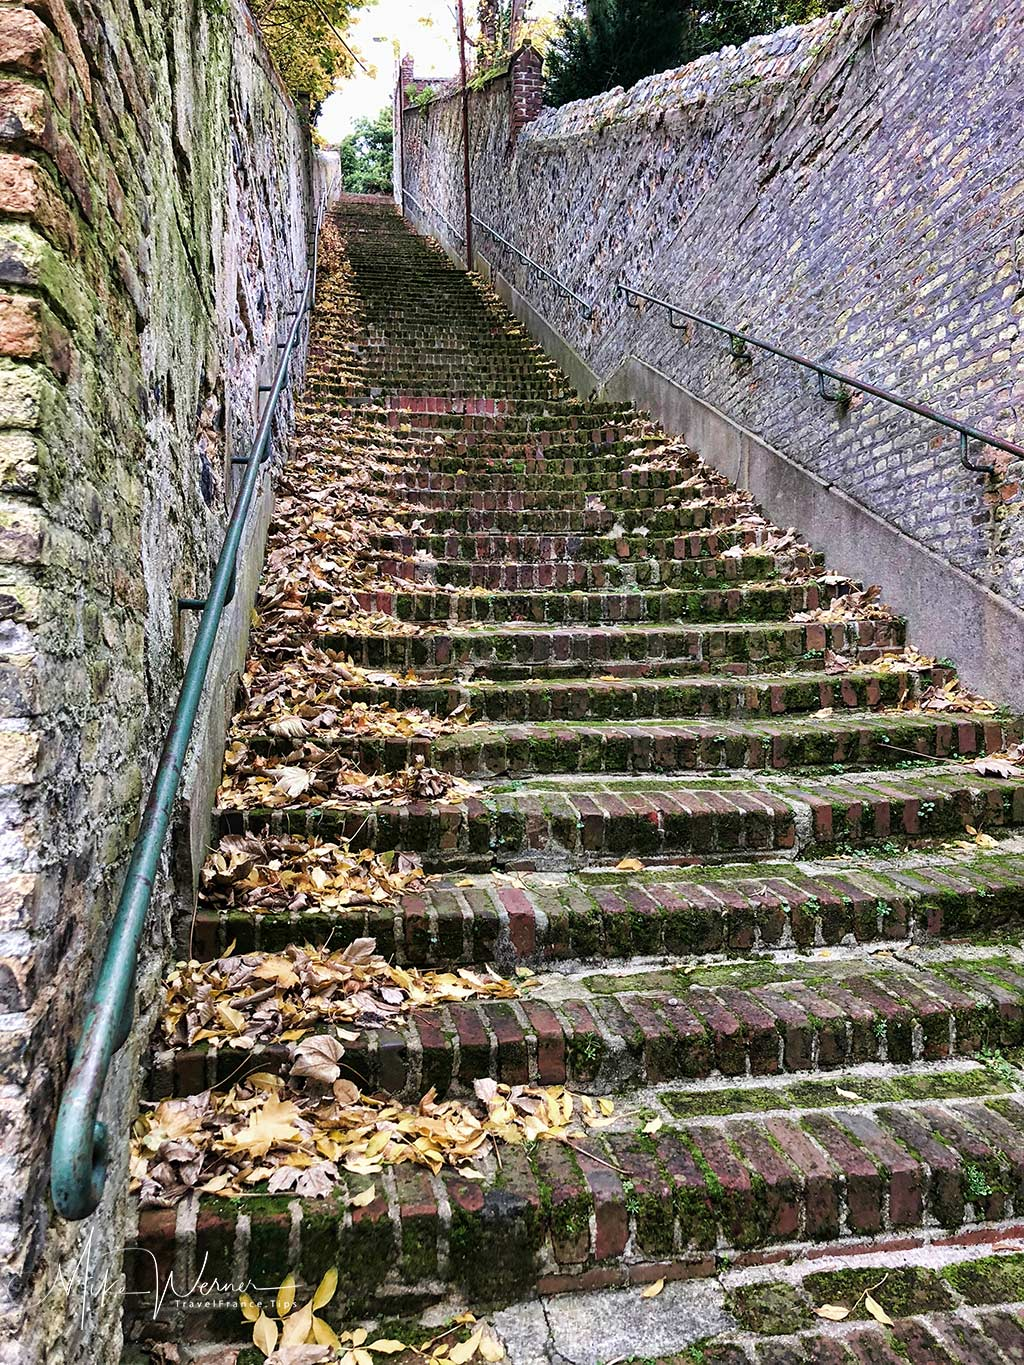 """The stairway """"Escalier-des-Noyers"""" in Le Havre, Normandy"""